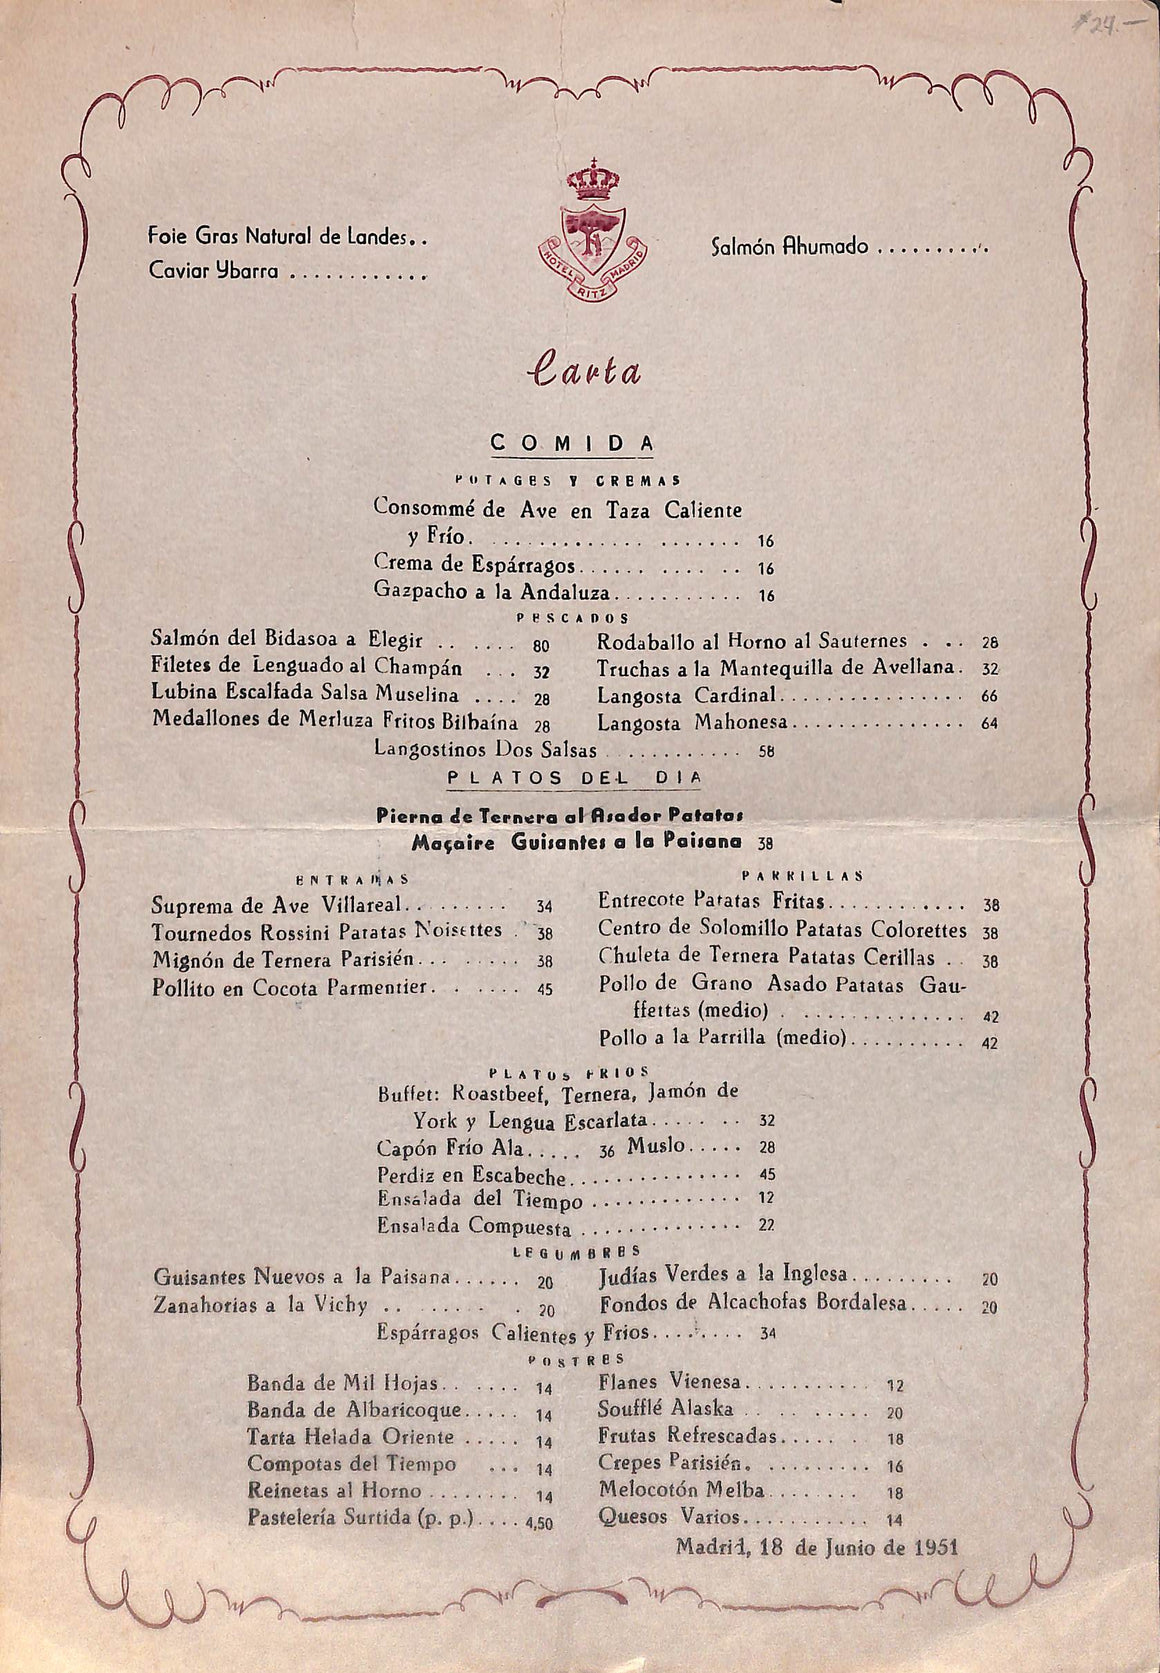 Hotel Ritz Madrid Menu